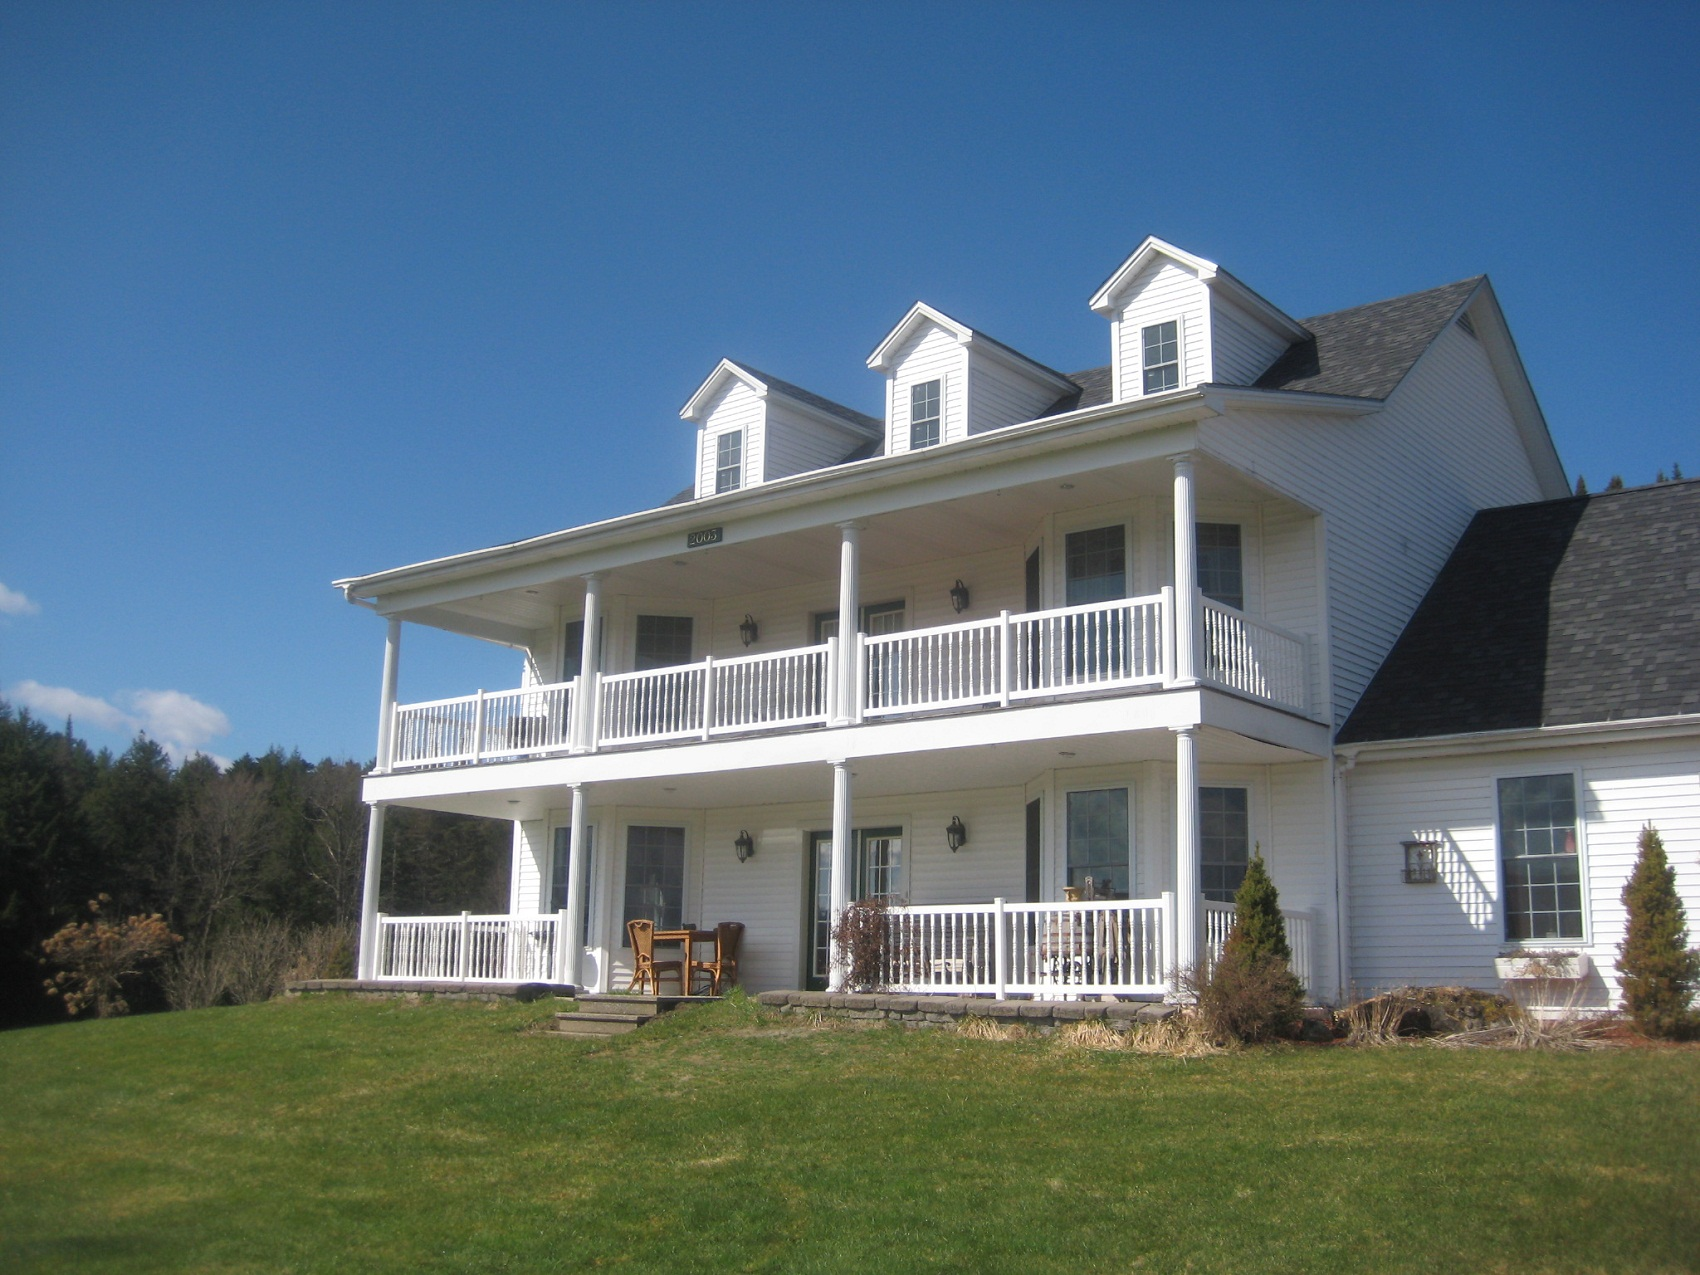 Luxury homes for sale in marshfield vermont heney realtors for Home builders in vermont